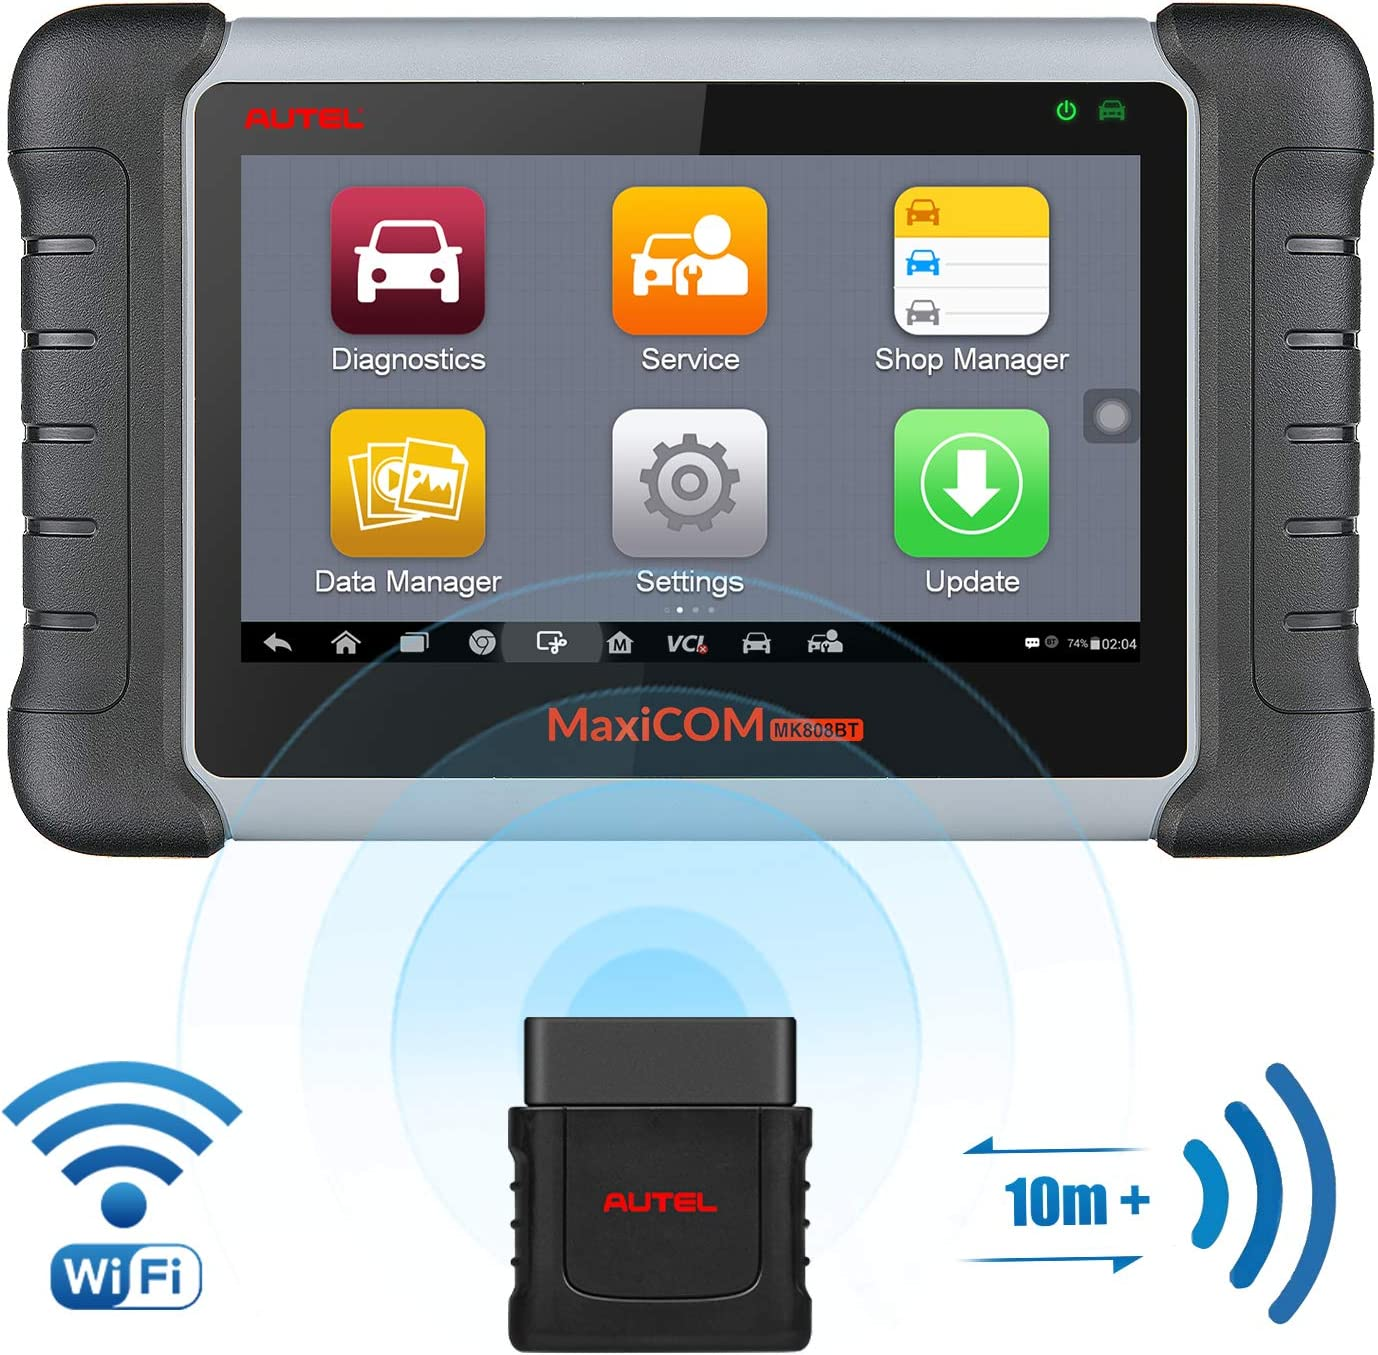 Autel Scanner MaxiCOM MK808BT Diagnostic Tool, Upgraded Version of MK808, with MaxiVCI Supports Full System Scan & Key Fob Programming, ABS Bleed, Oil Reset, EPB, BMS, SAS, DPF(Maxicheck Pro + MD802)